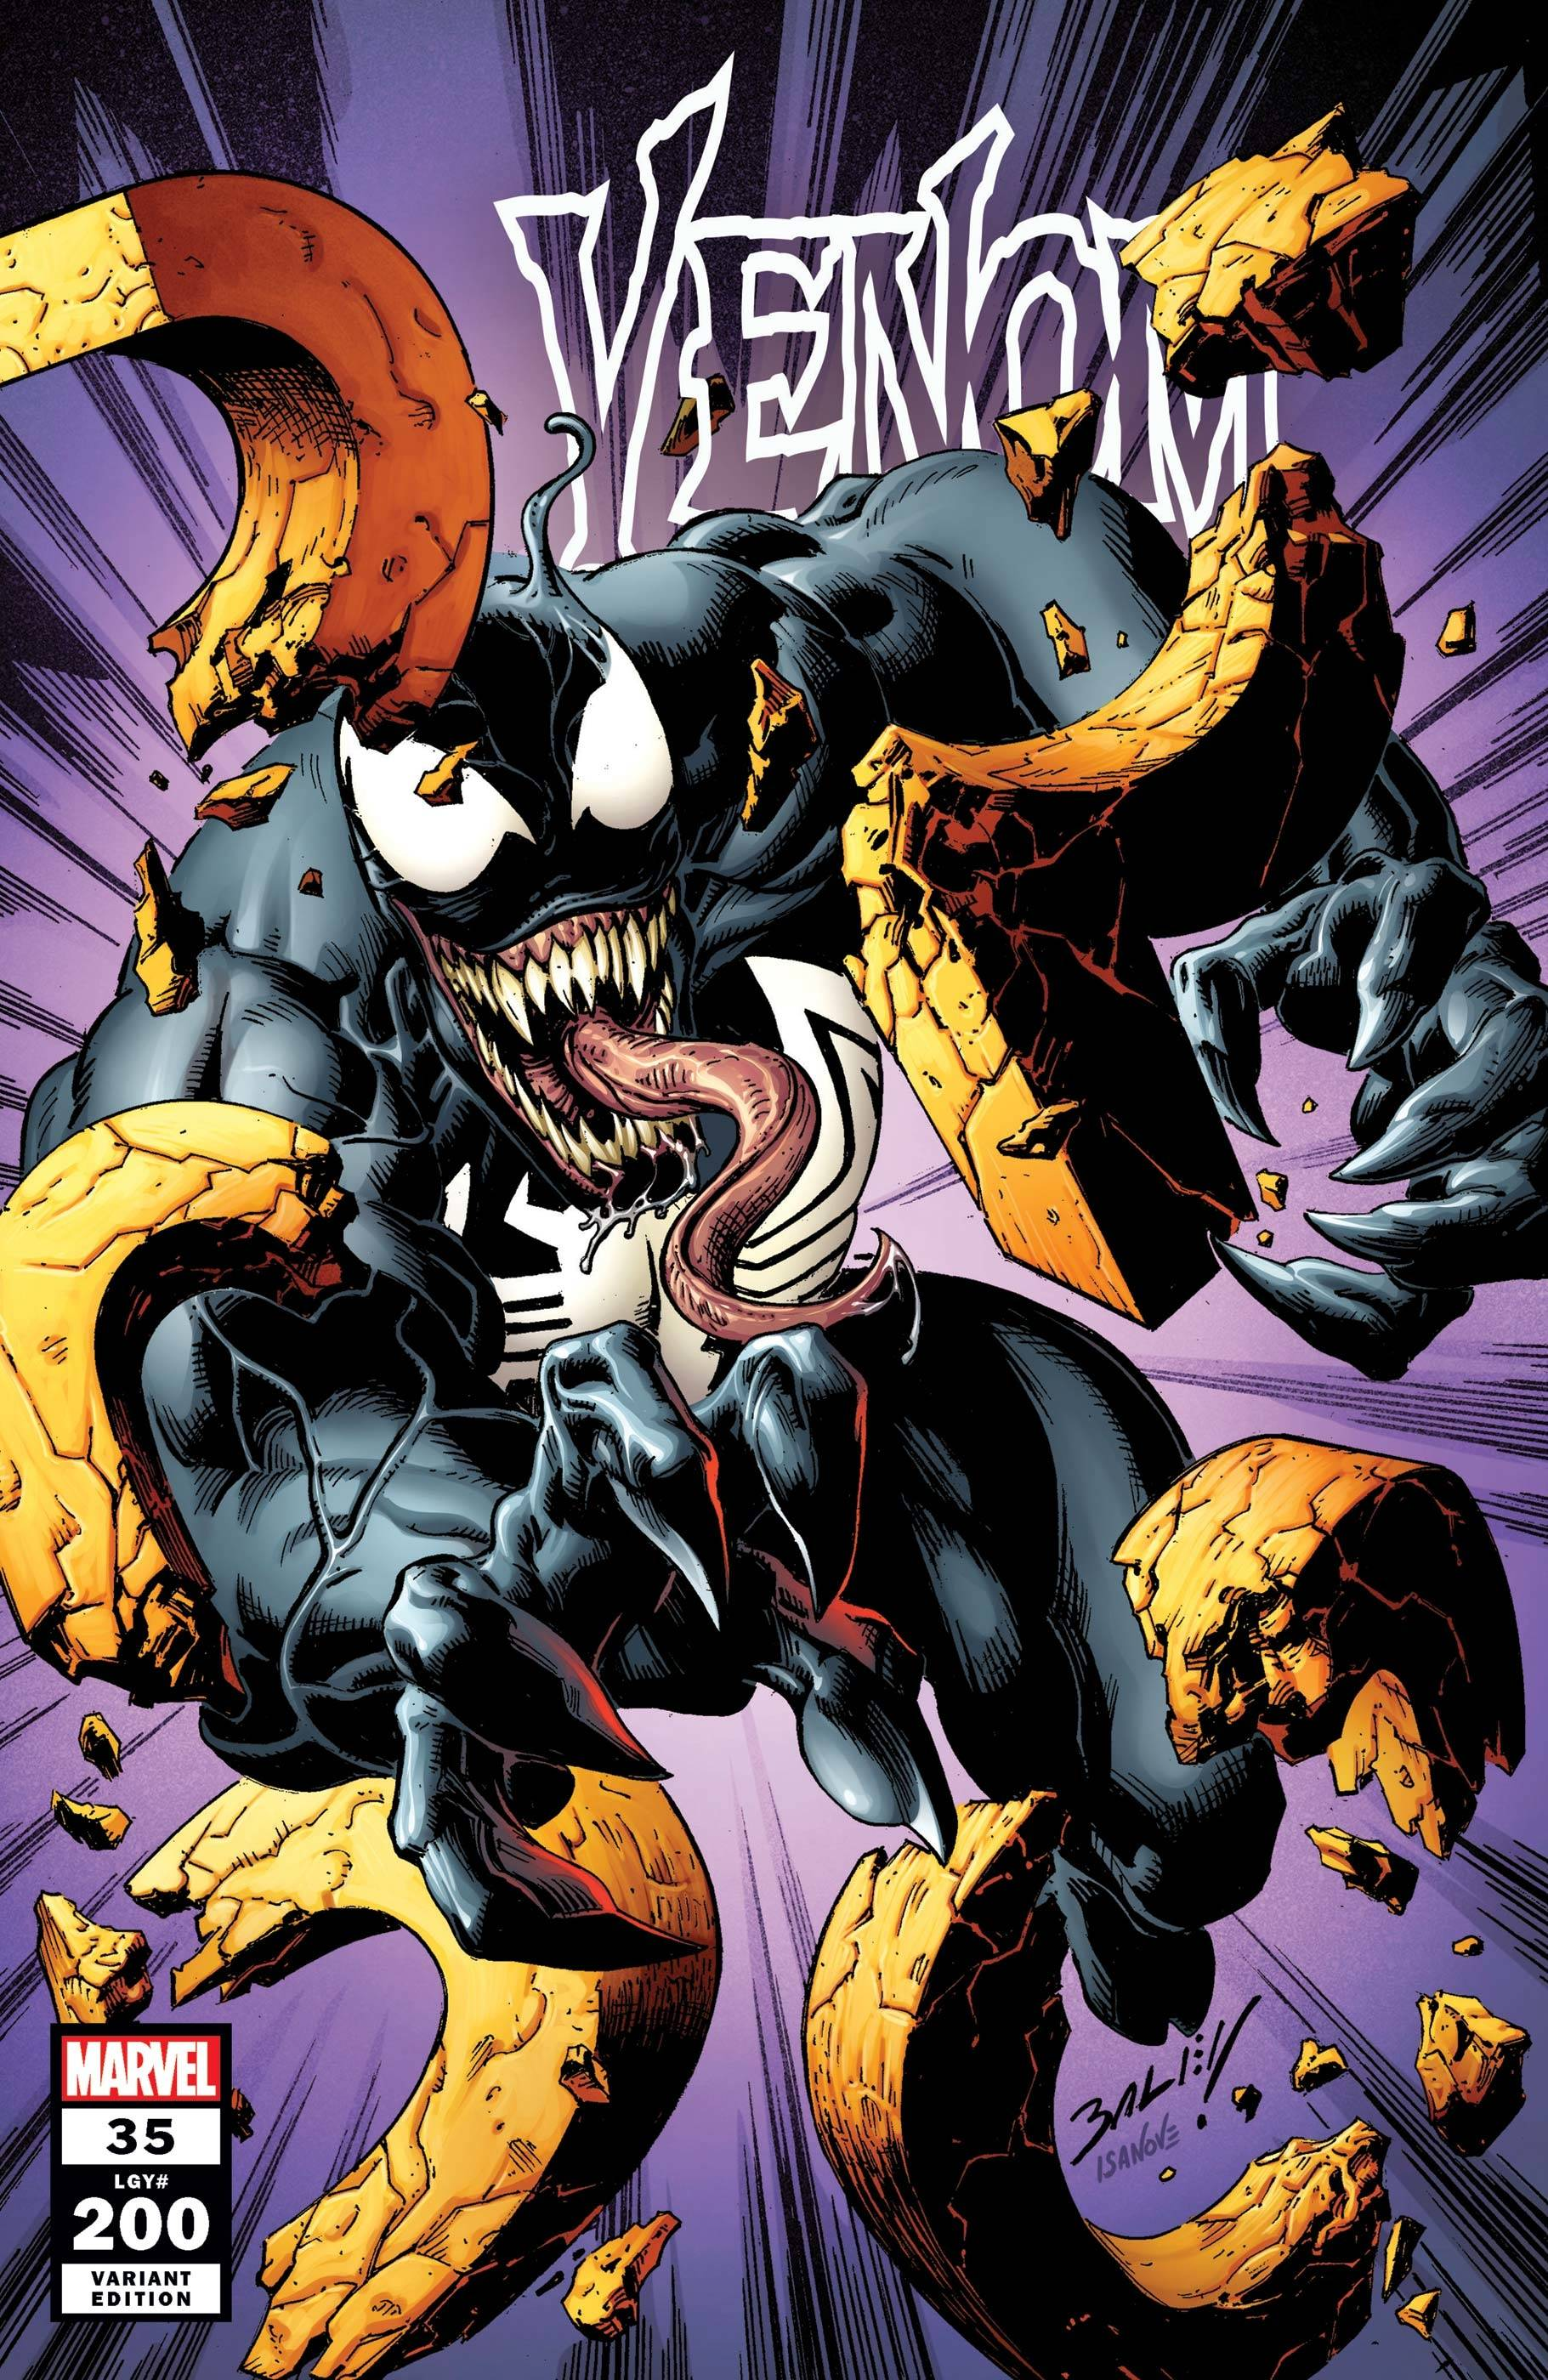 VENOM #35 BAGLEY VAR 200TH ISSUE